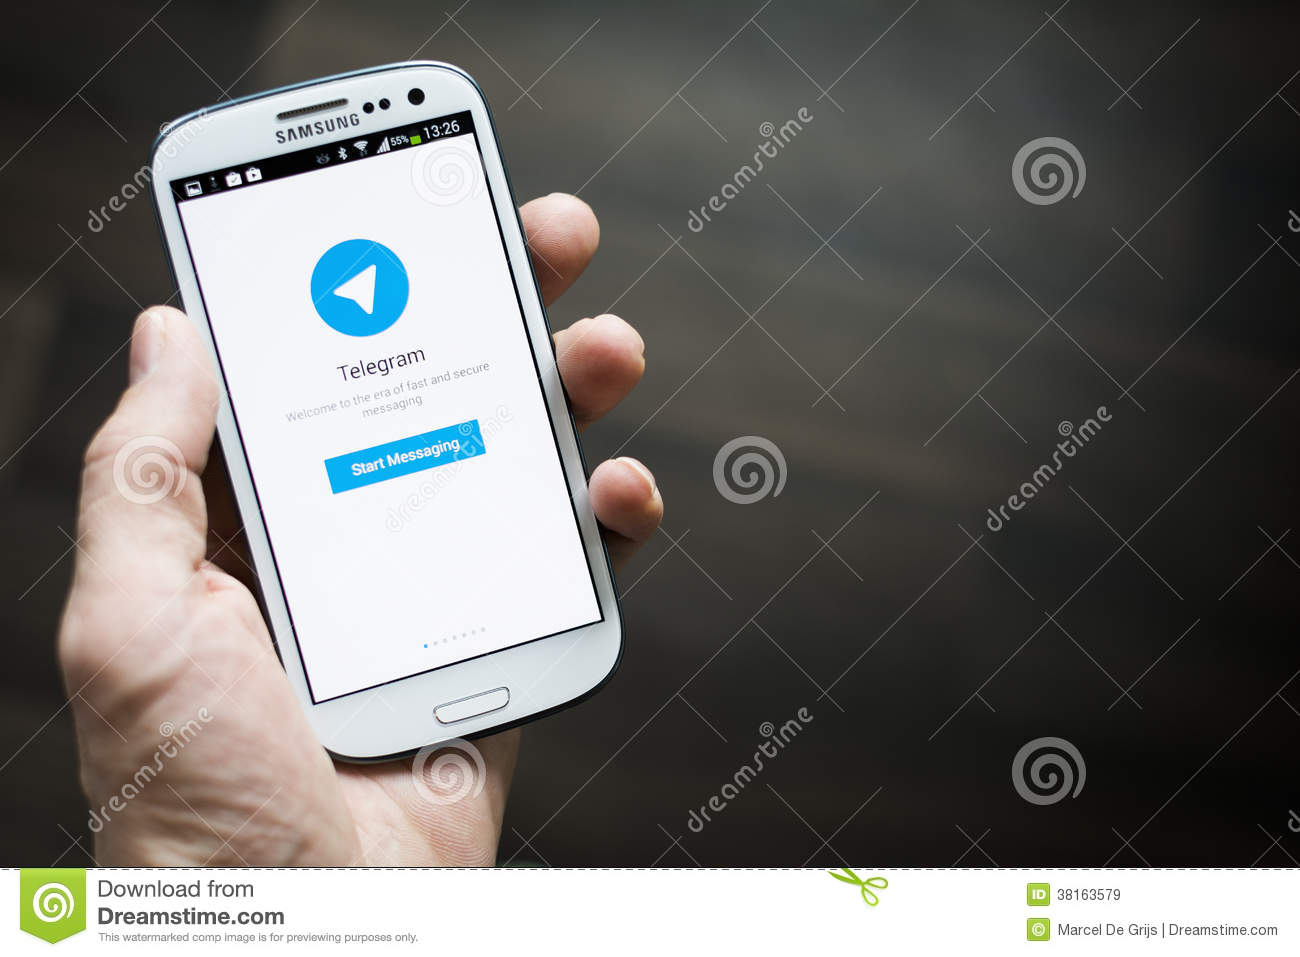 how to download all photos from telegram